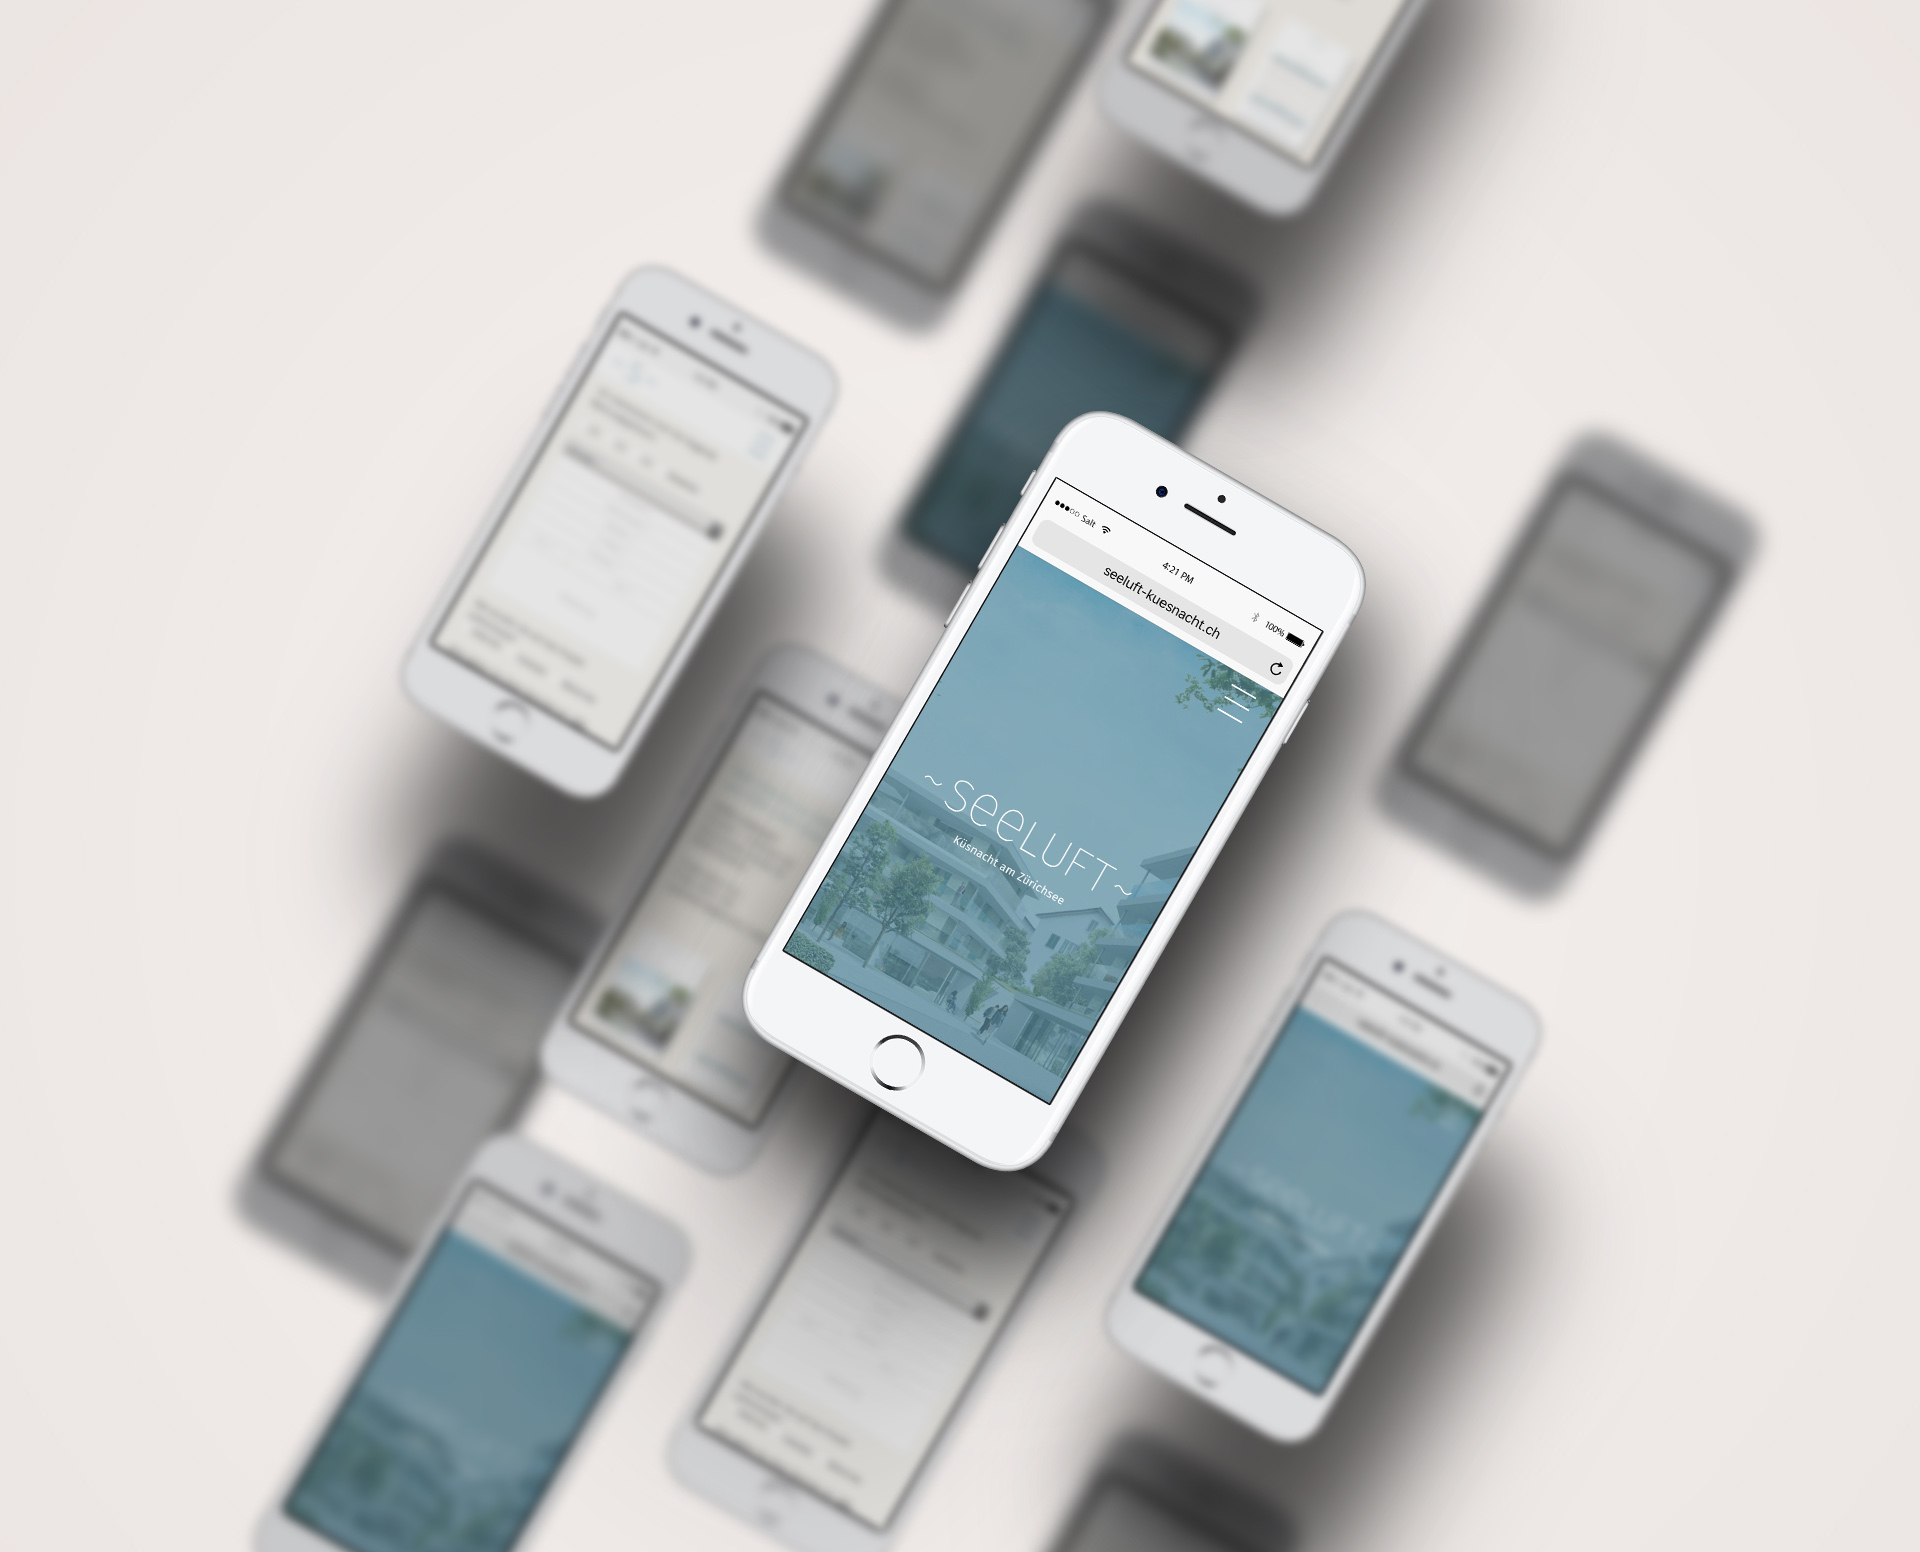 App_Screens_Seeluft_01_web